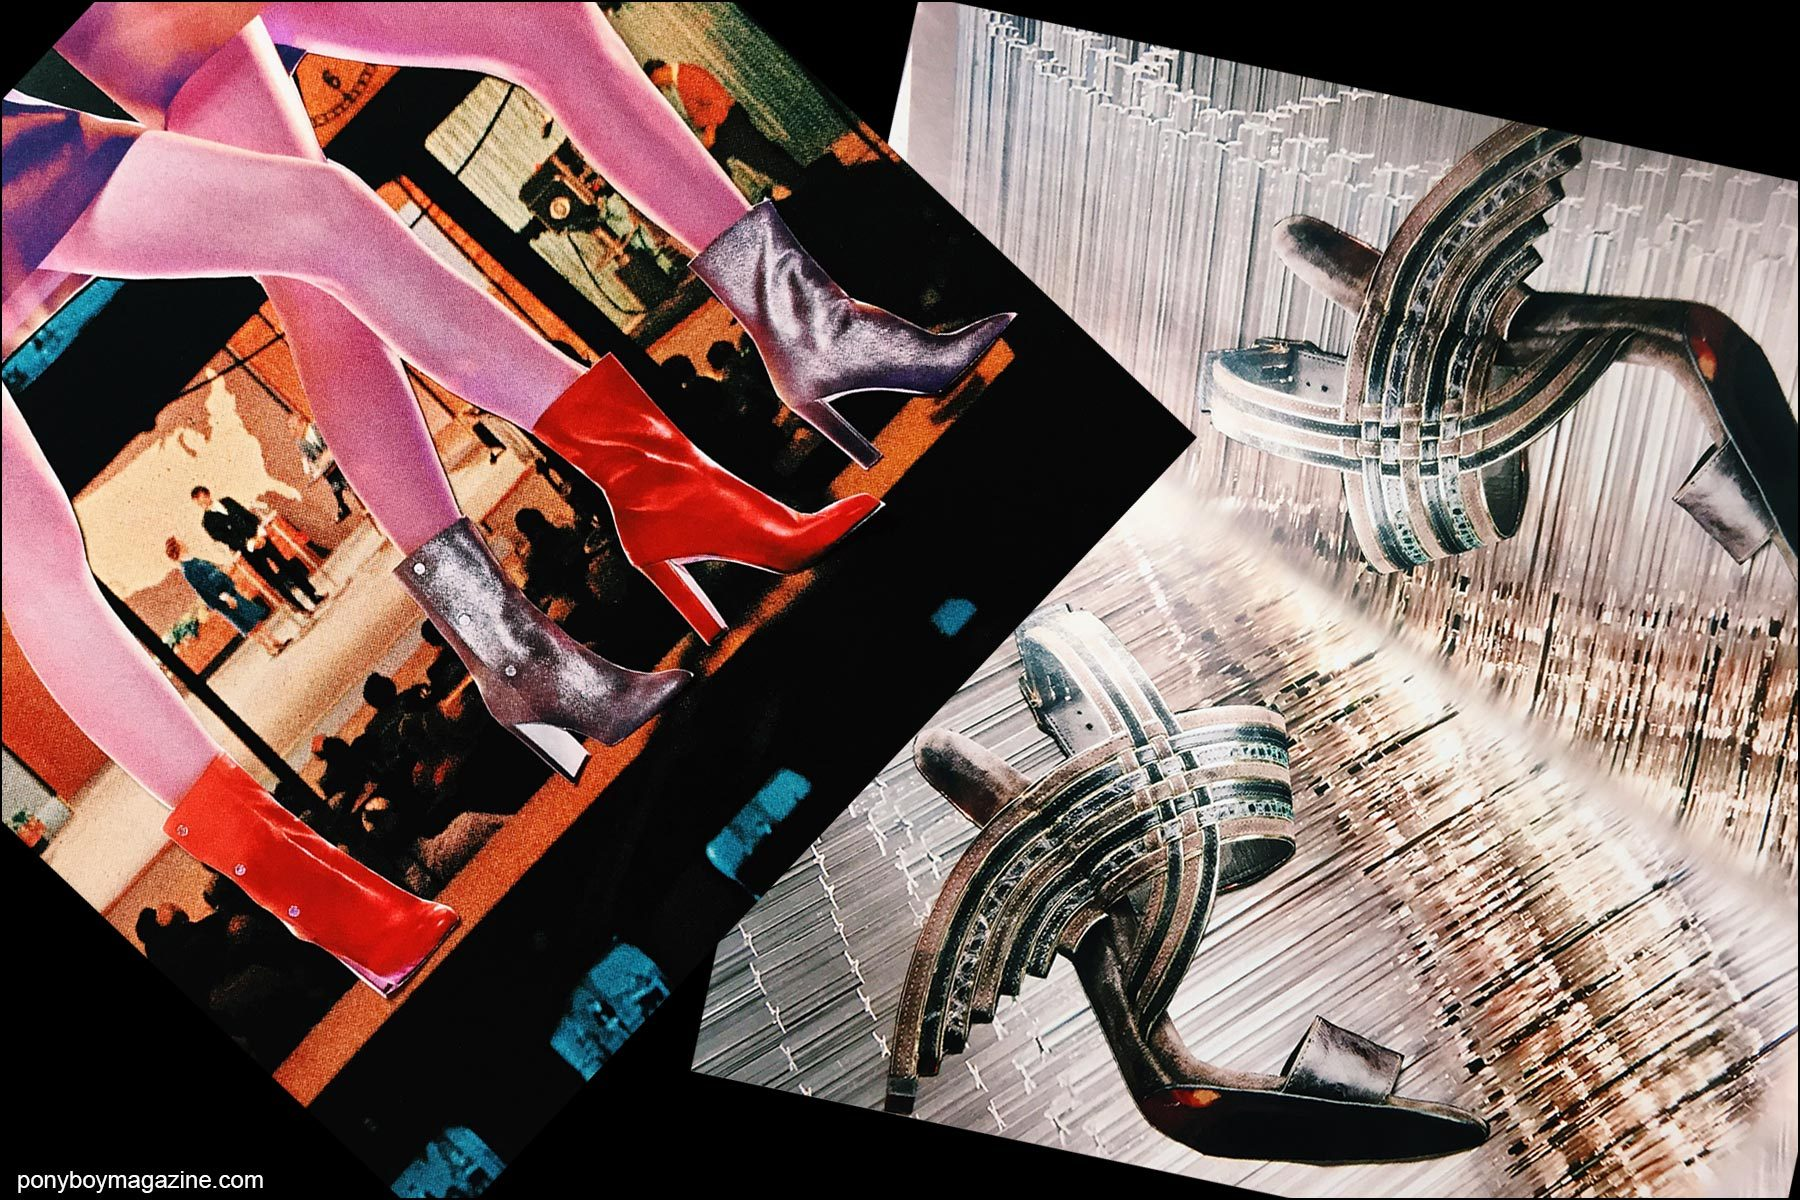 Collage artwork of Jimmy Choo and Ferragamo images by Patrick Keohane for RS Theory. Ponyboy magazine NY.